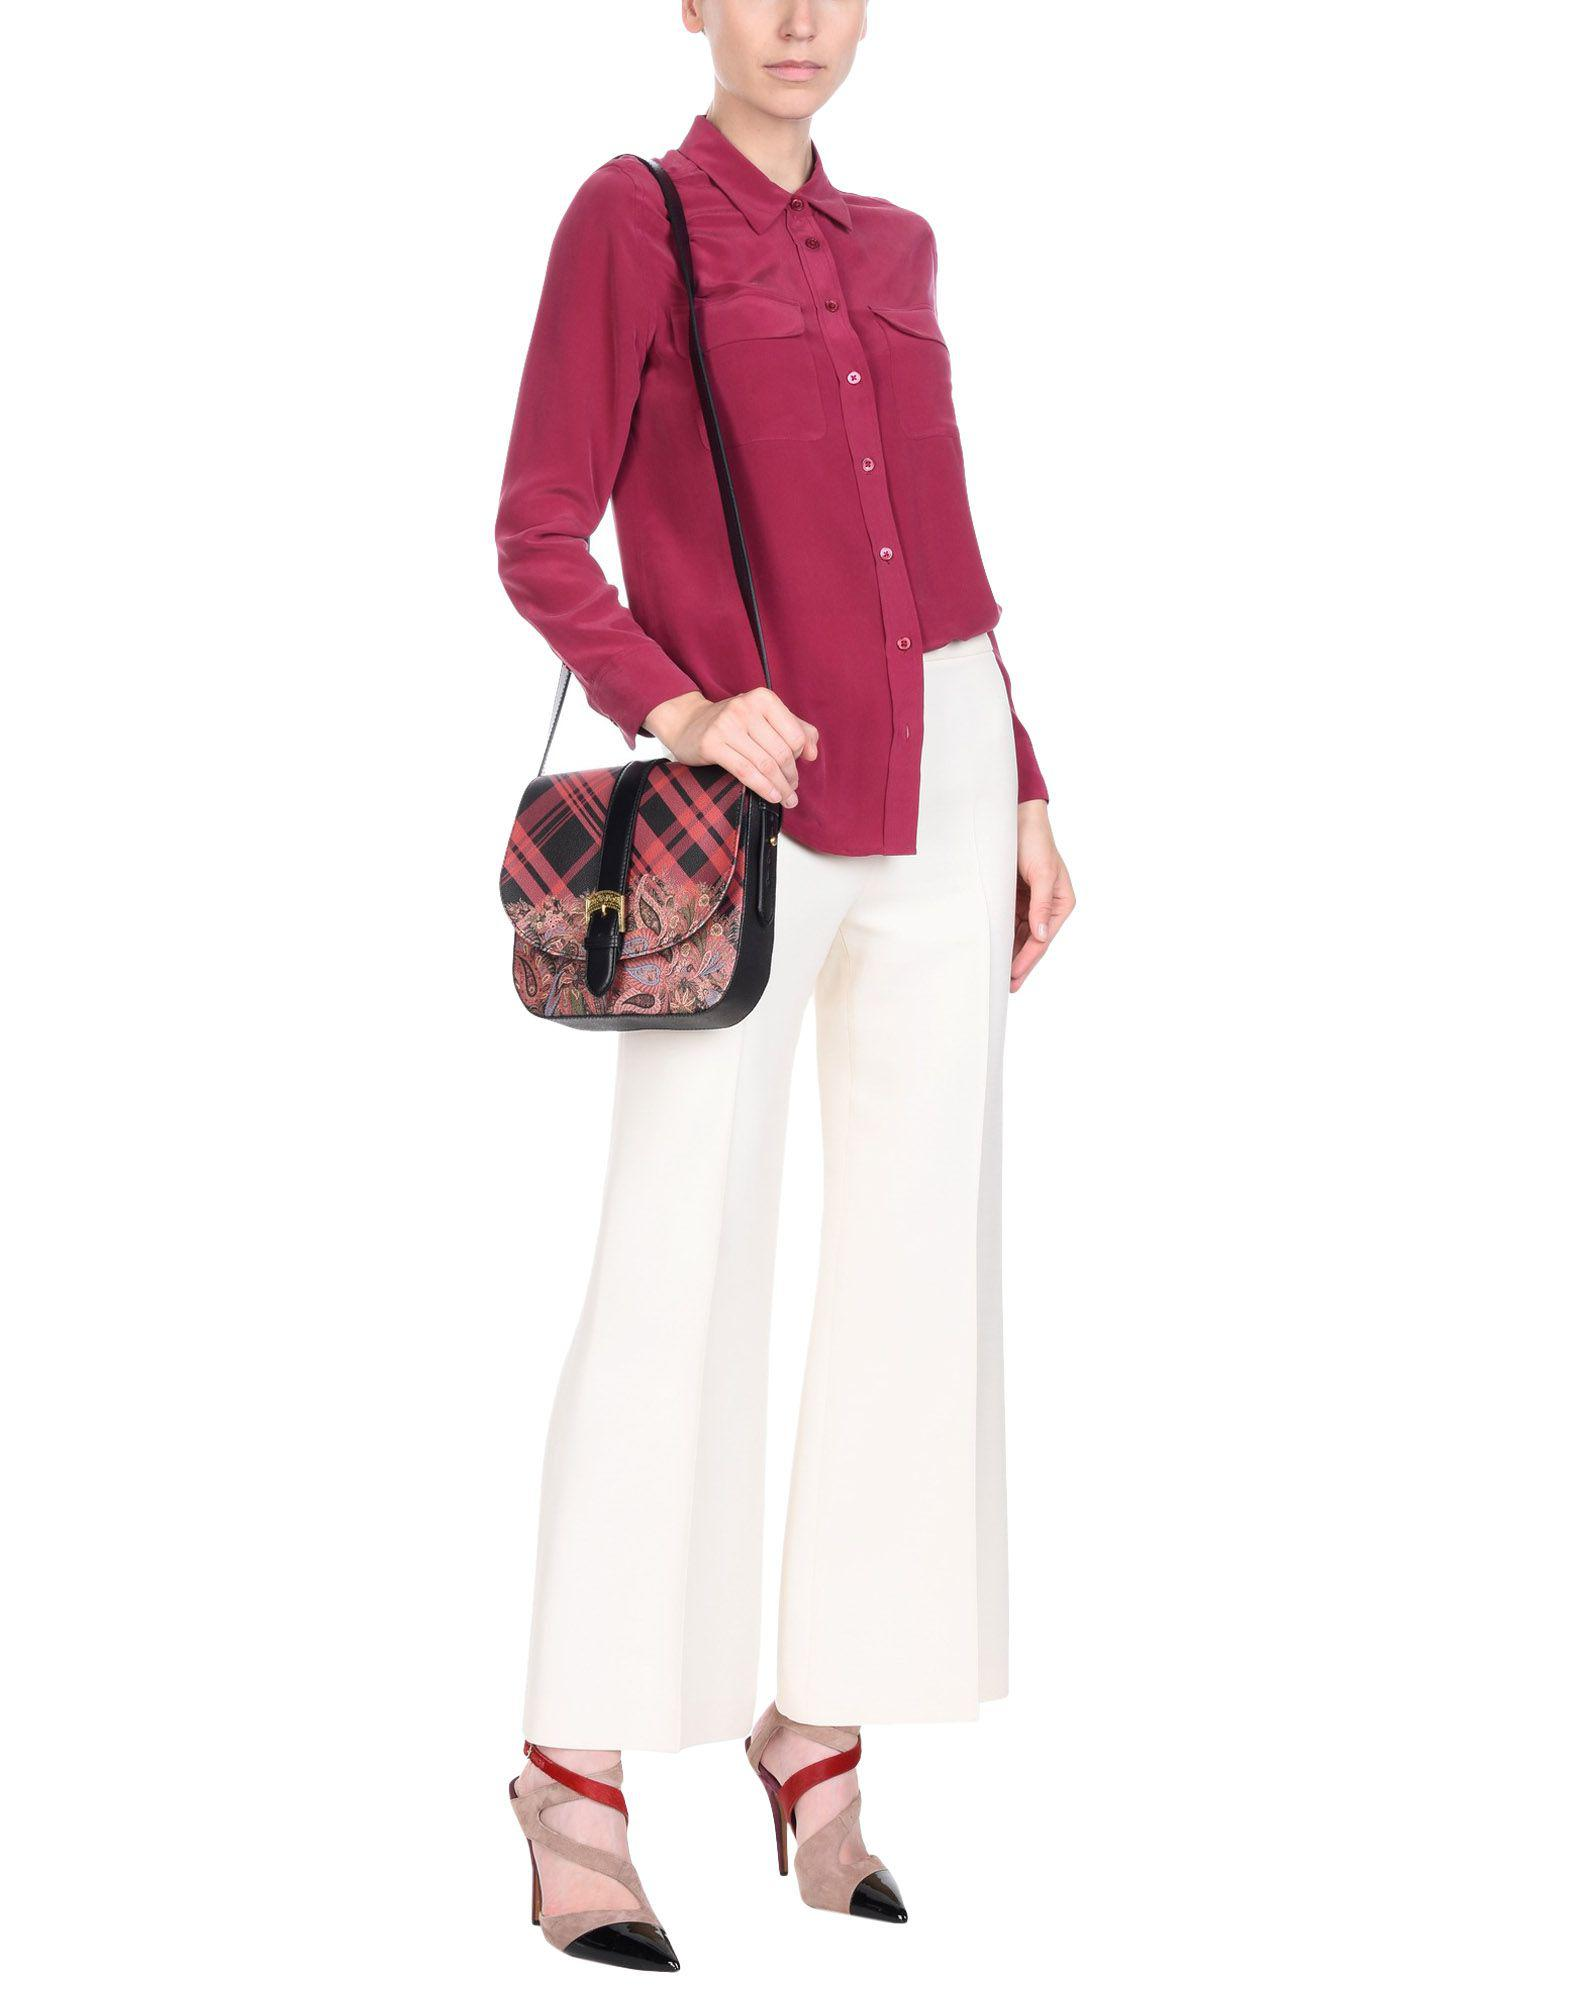 Etro Cross-body Bag in Brick Red (Red)